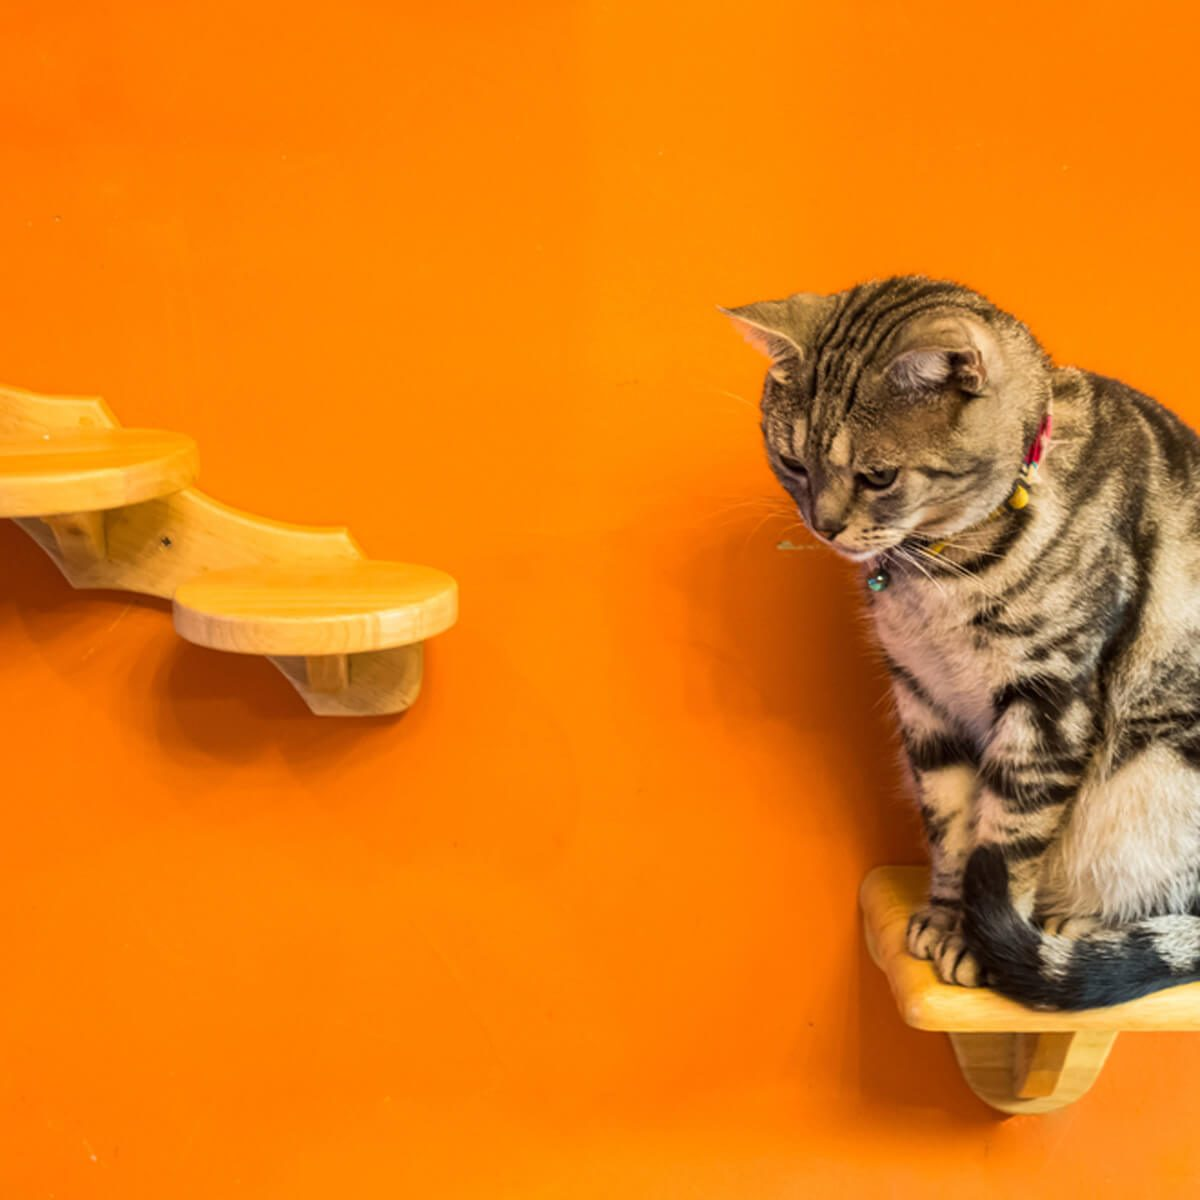 Cat Furniture: Shelves and Pegs for Cat Steps